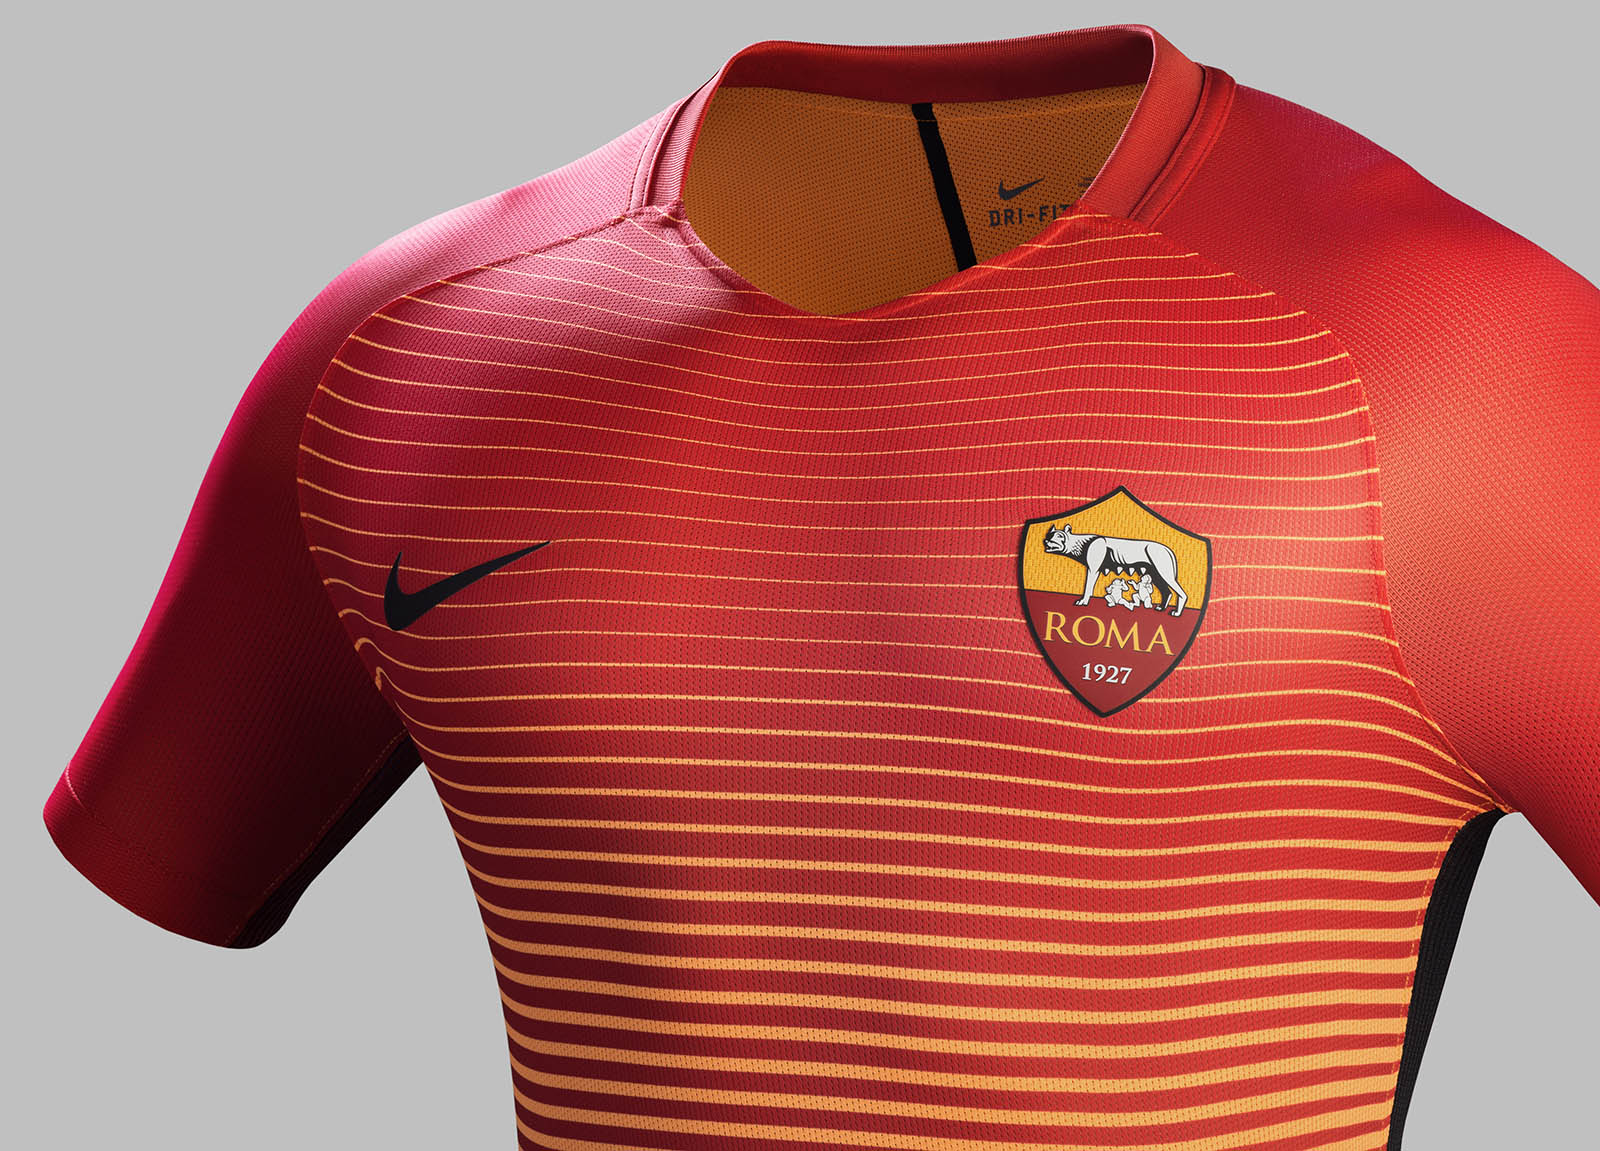 Astonishing As Roma 16 17 Third Kit Released Footy Headlines Hairstyle Inspiration Daily Dogsangcom